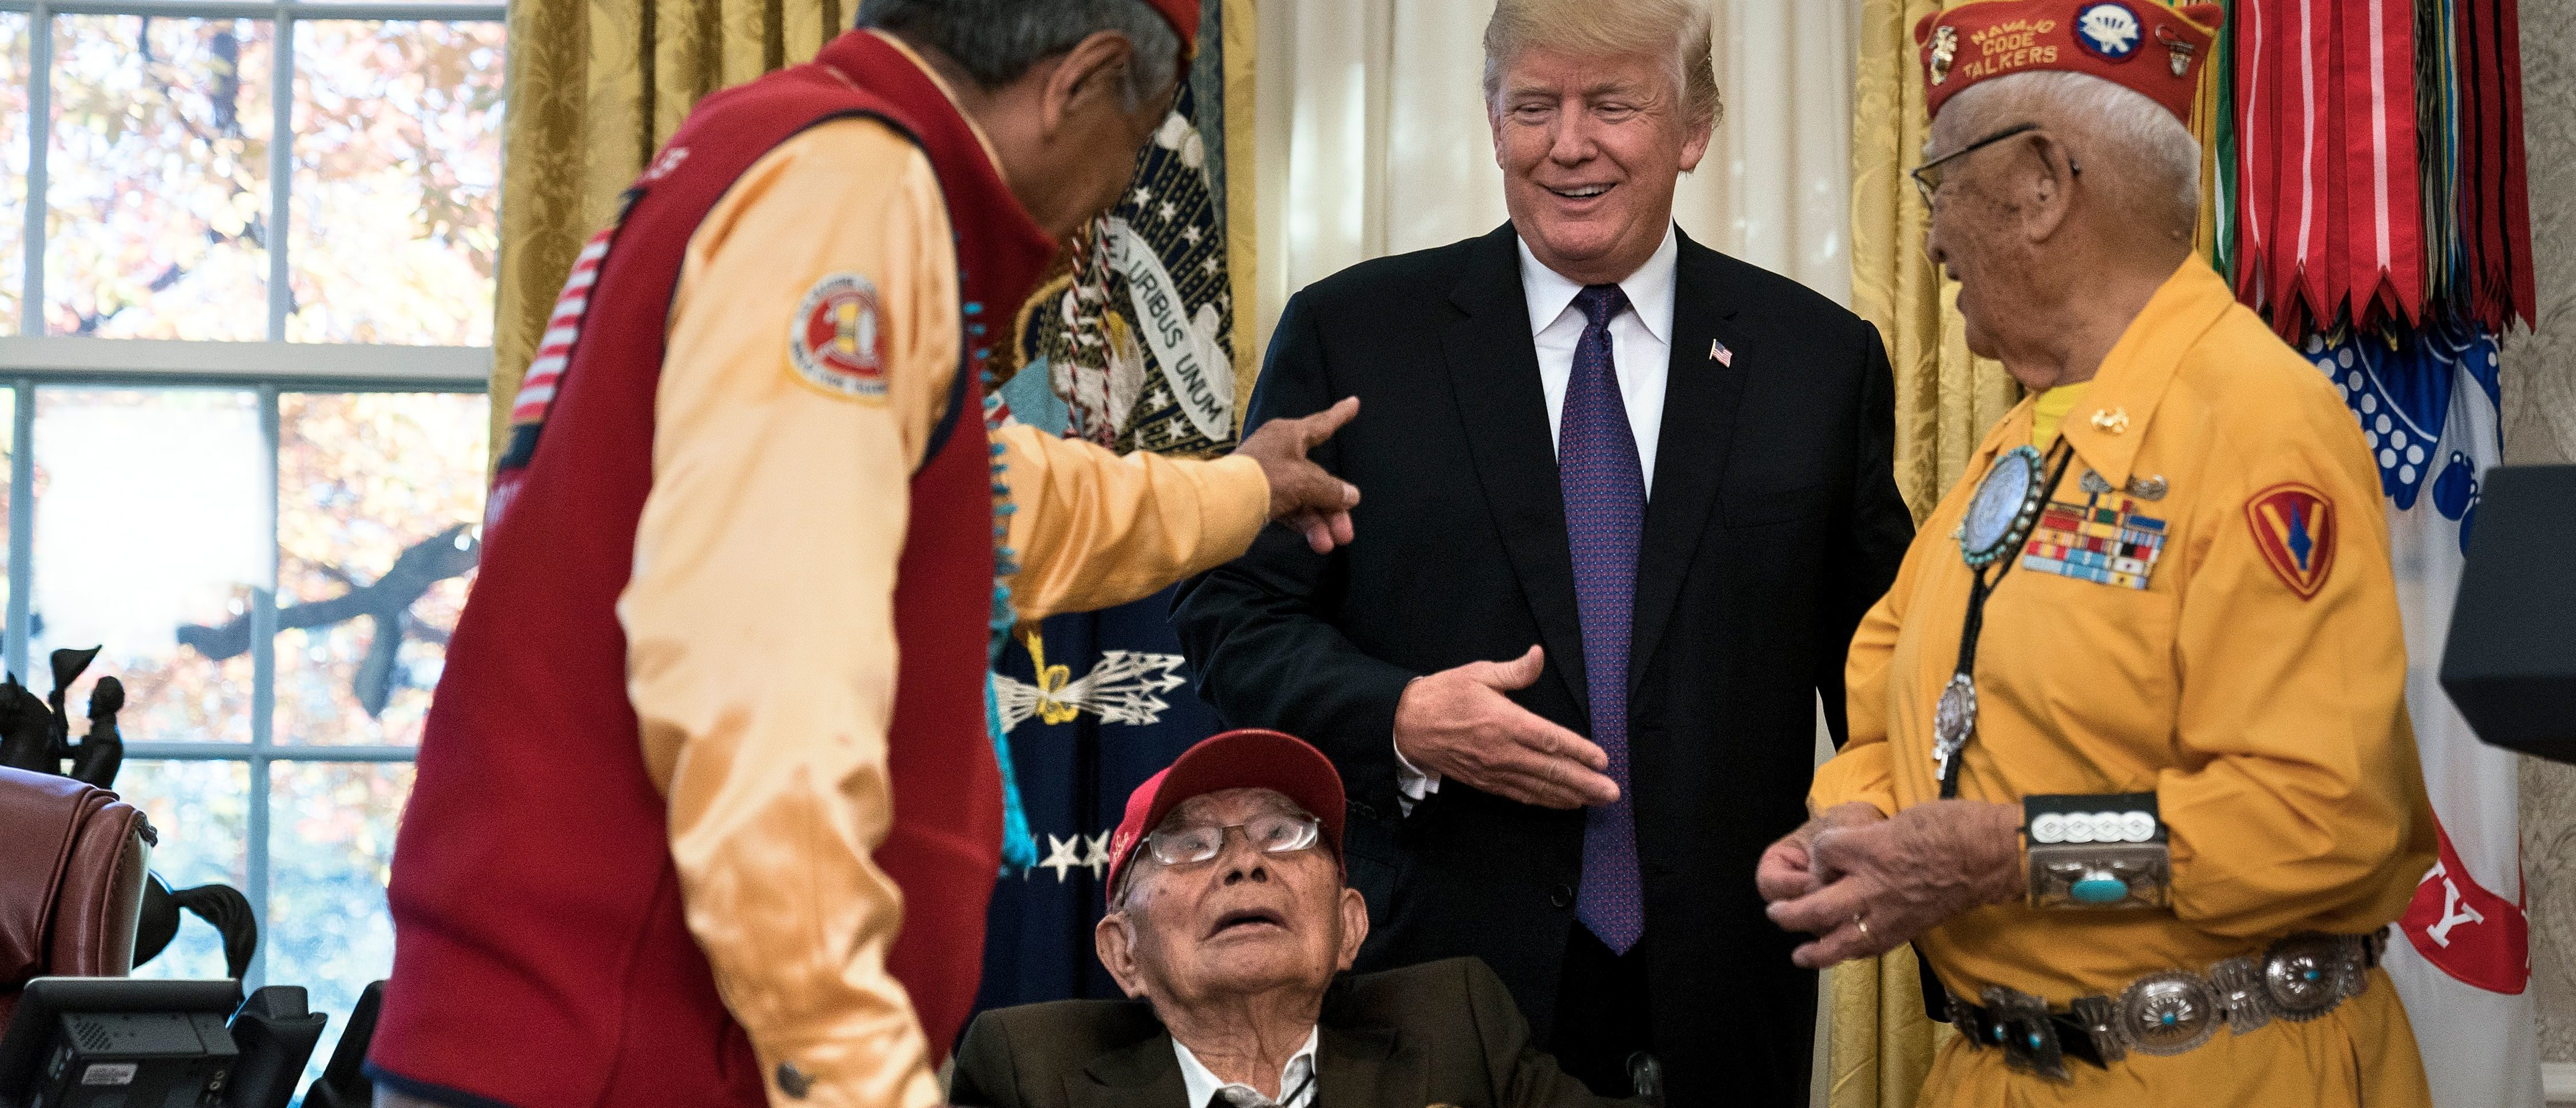 US President Donald Trump greets Navajo veterans in the Oval Office of the White House during an event honoring Native American code talkers who served in World War II on November 27, 2017 in Washington, DC. / AFP PHOTO / Brendan Smialowski (Photo credit should read BRENDAN SMIALOWSKI/AFP/Getty Images)